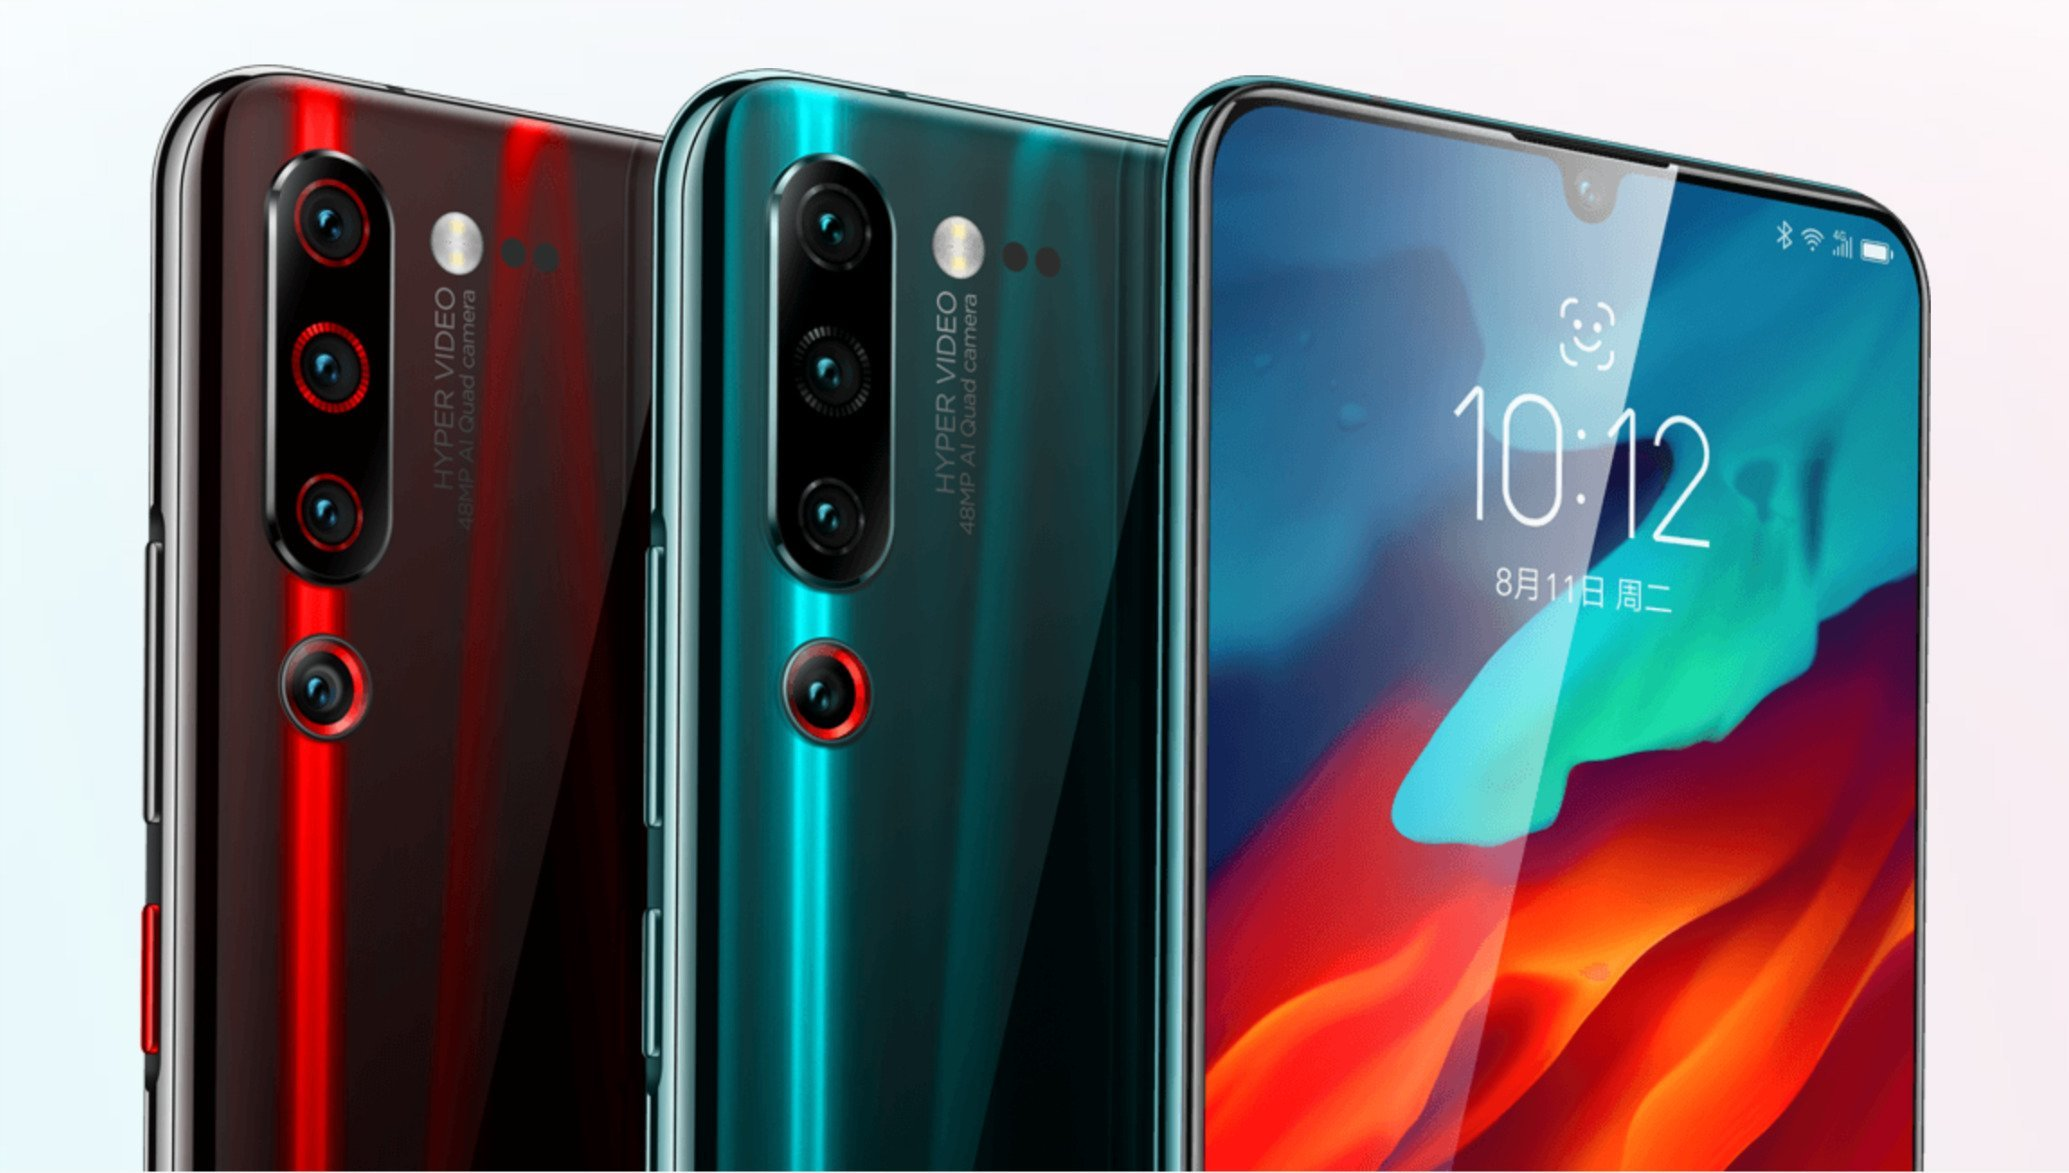 Lenovo officialise le Z6 Pro et son quadruple capteur photo